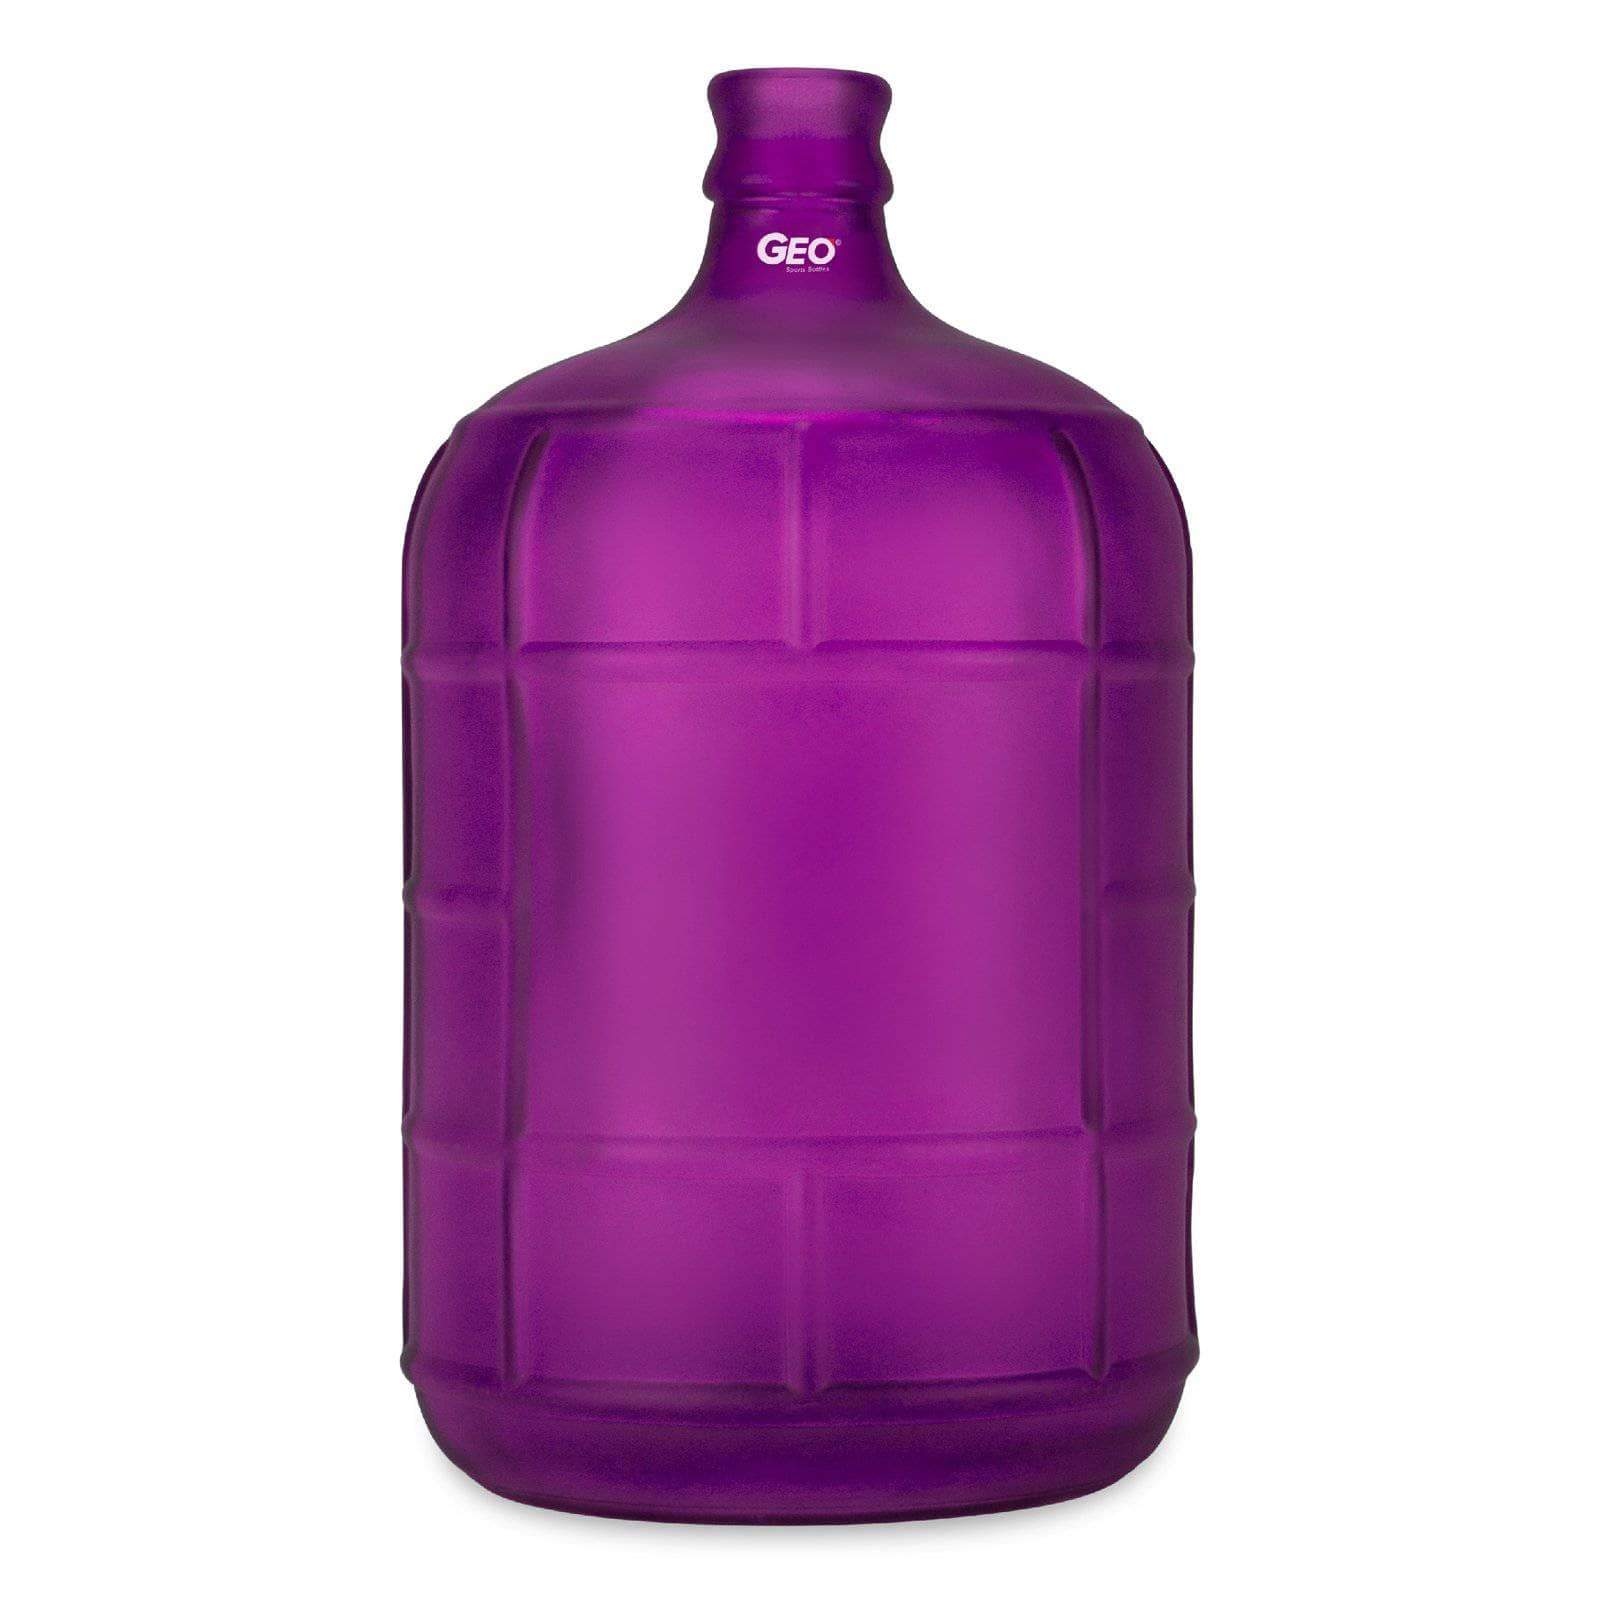 Geo Bottles Glass Bottles Purple 3 Gallon Round Frosted Glass Carboy w/55mm Crown Top